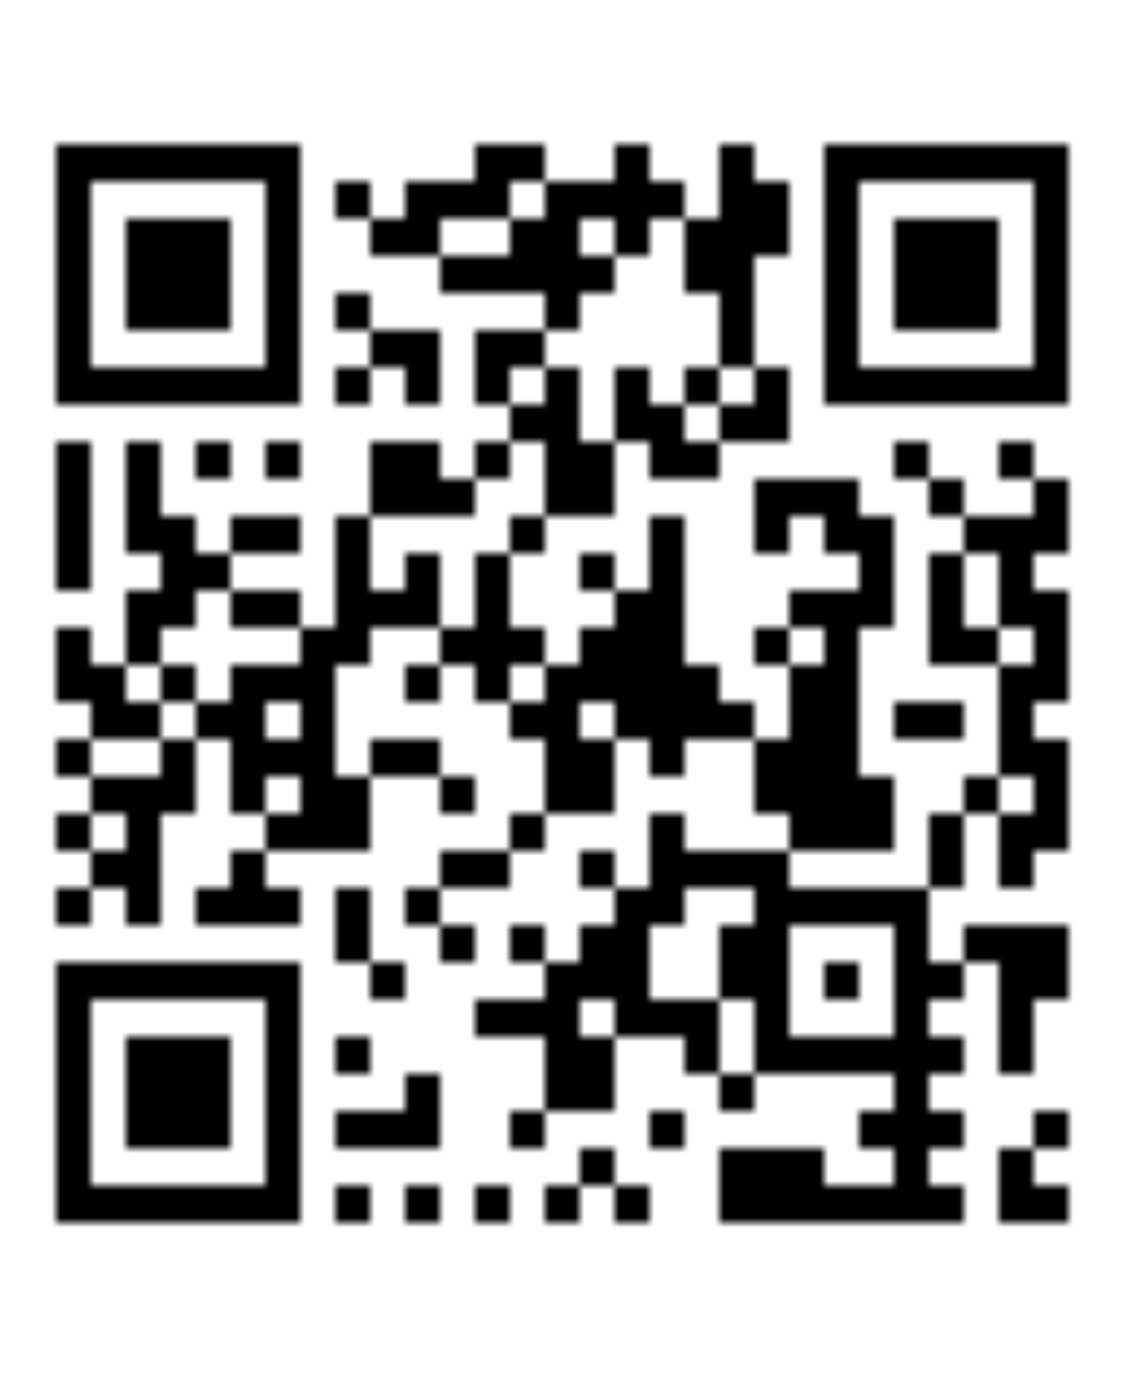 Save a heart cpr qr code save a heart cpr save a heart cpr website qr code 1betcityfo Image collections